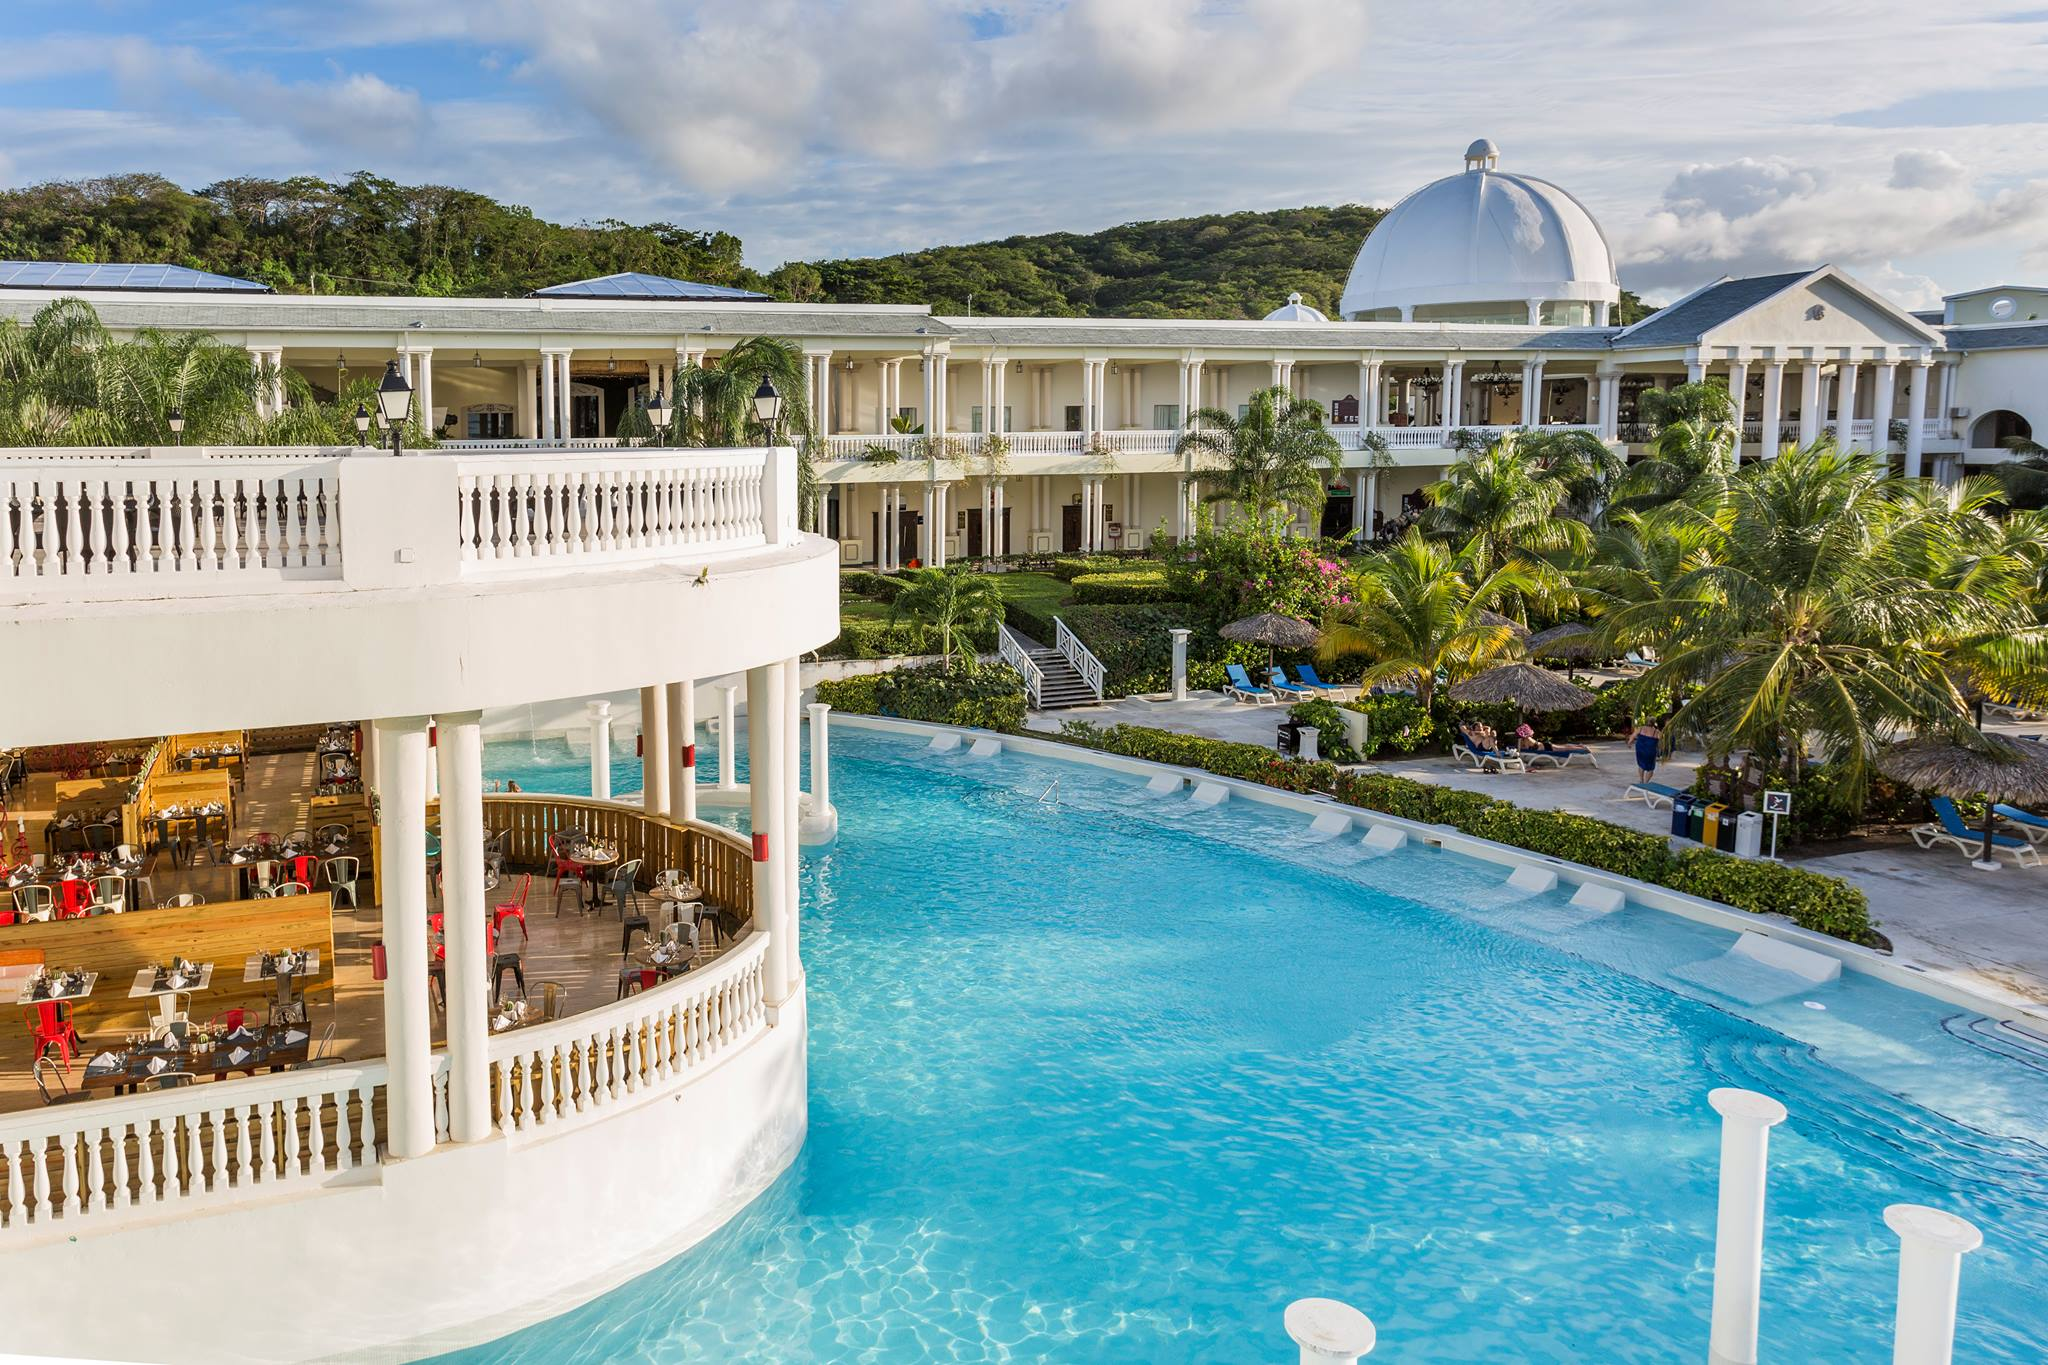 Fabulous family friendly resorts in jamaica for every need